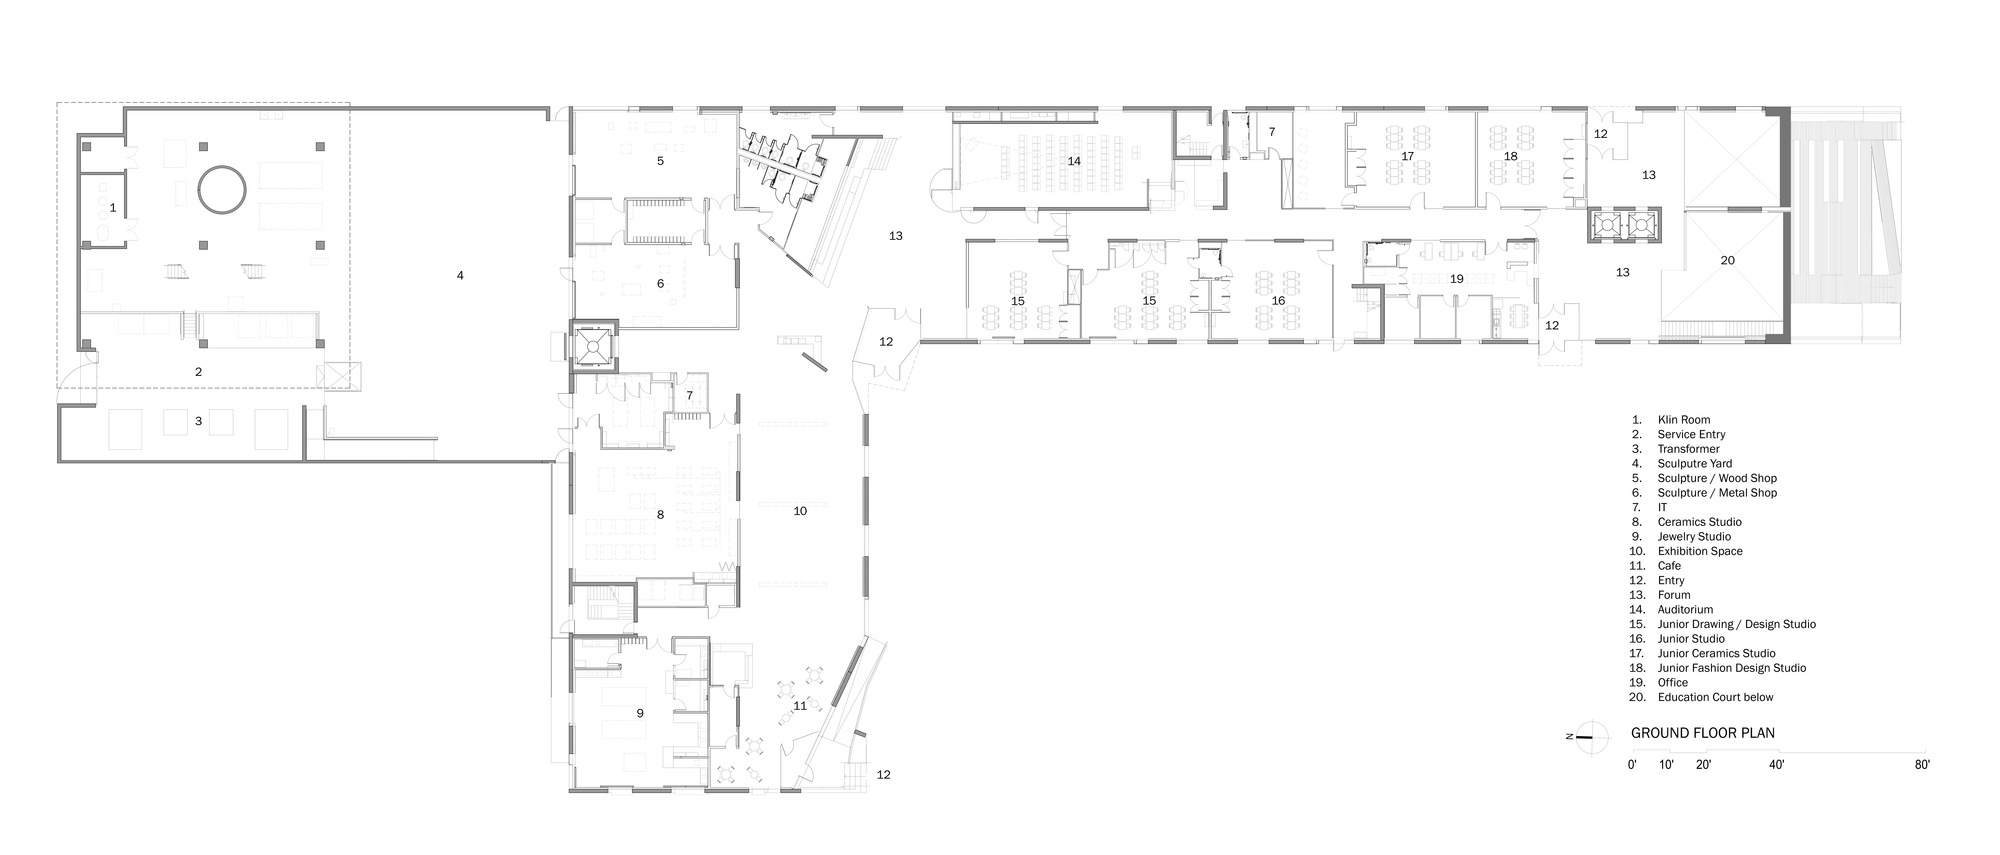 Gallery Of Glassell School Of Art Steven Holl Architects 11